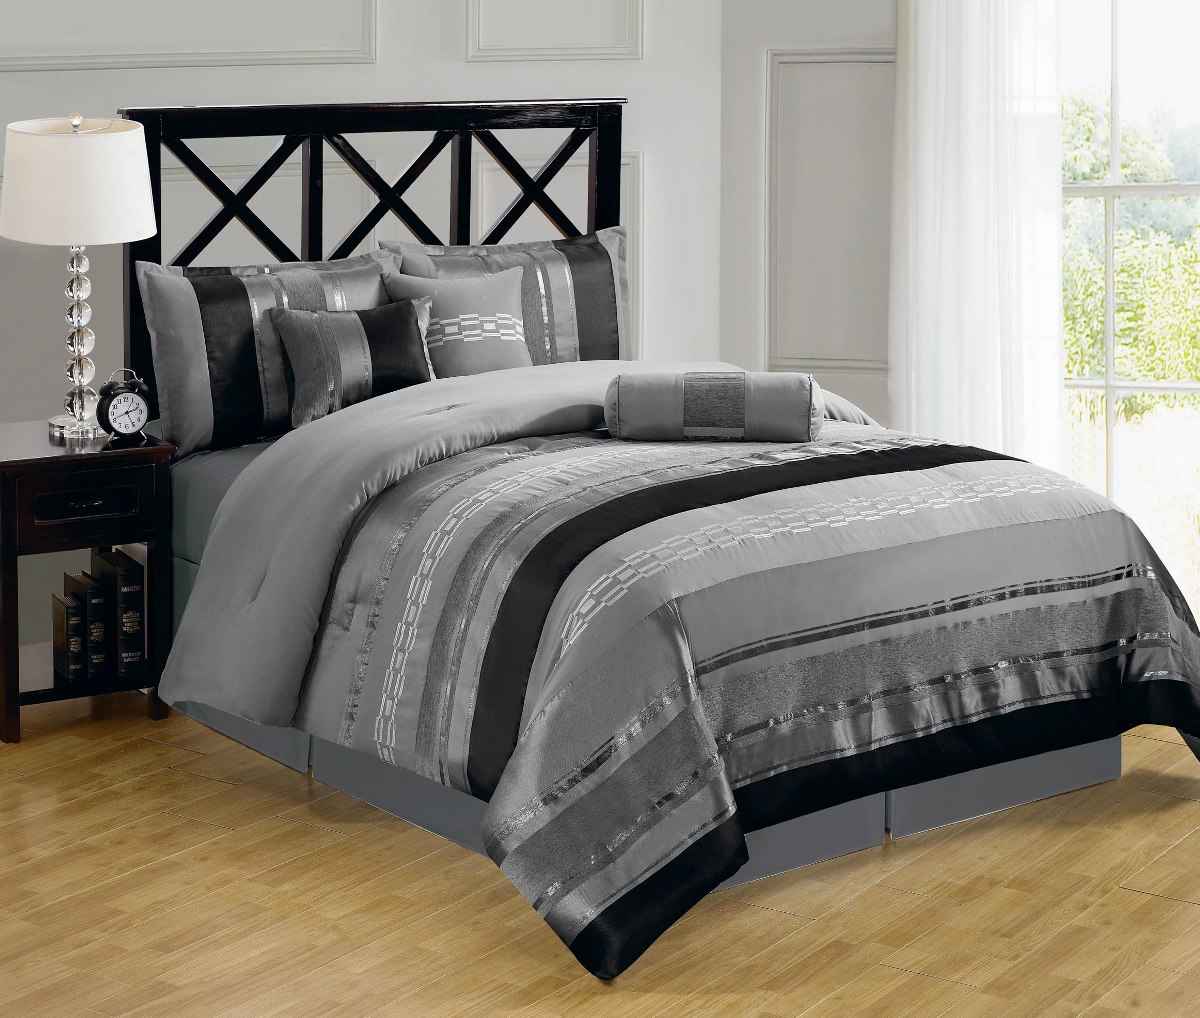 Image of: Black And White Comforter Twin